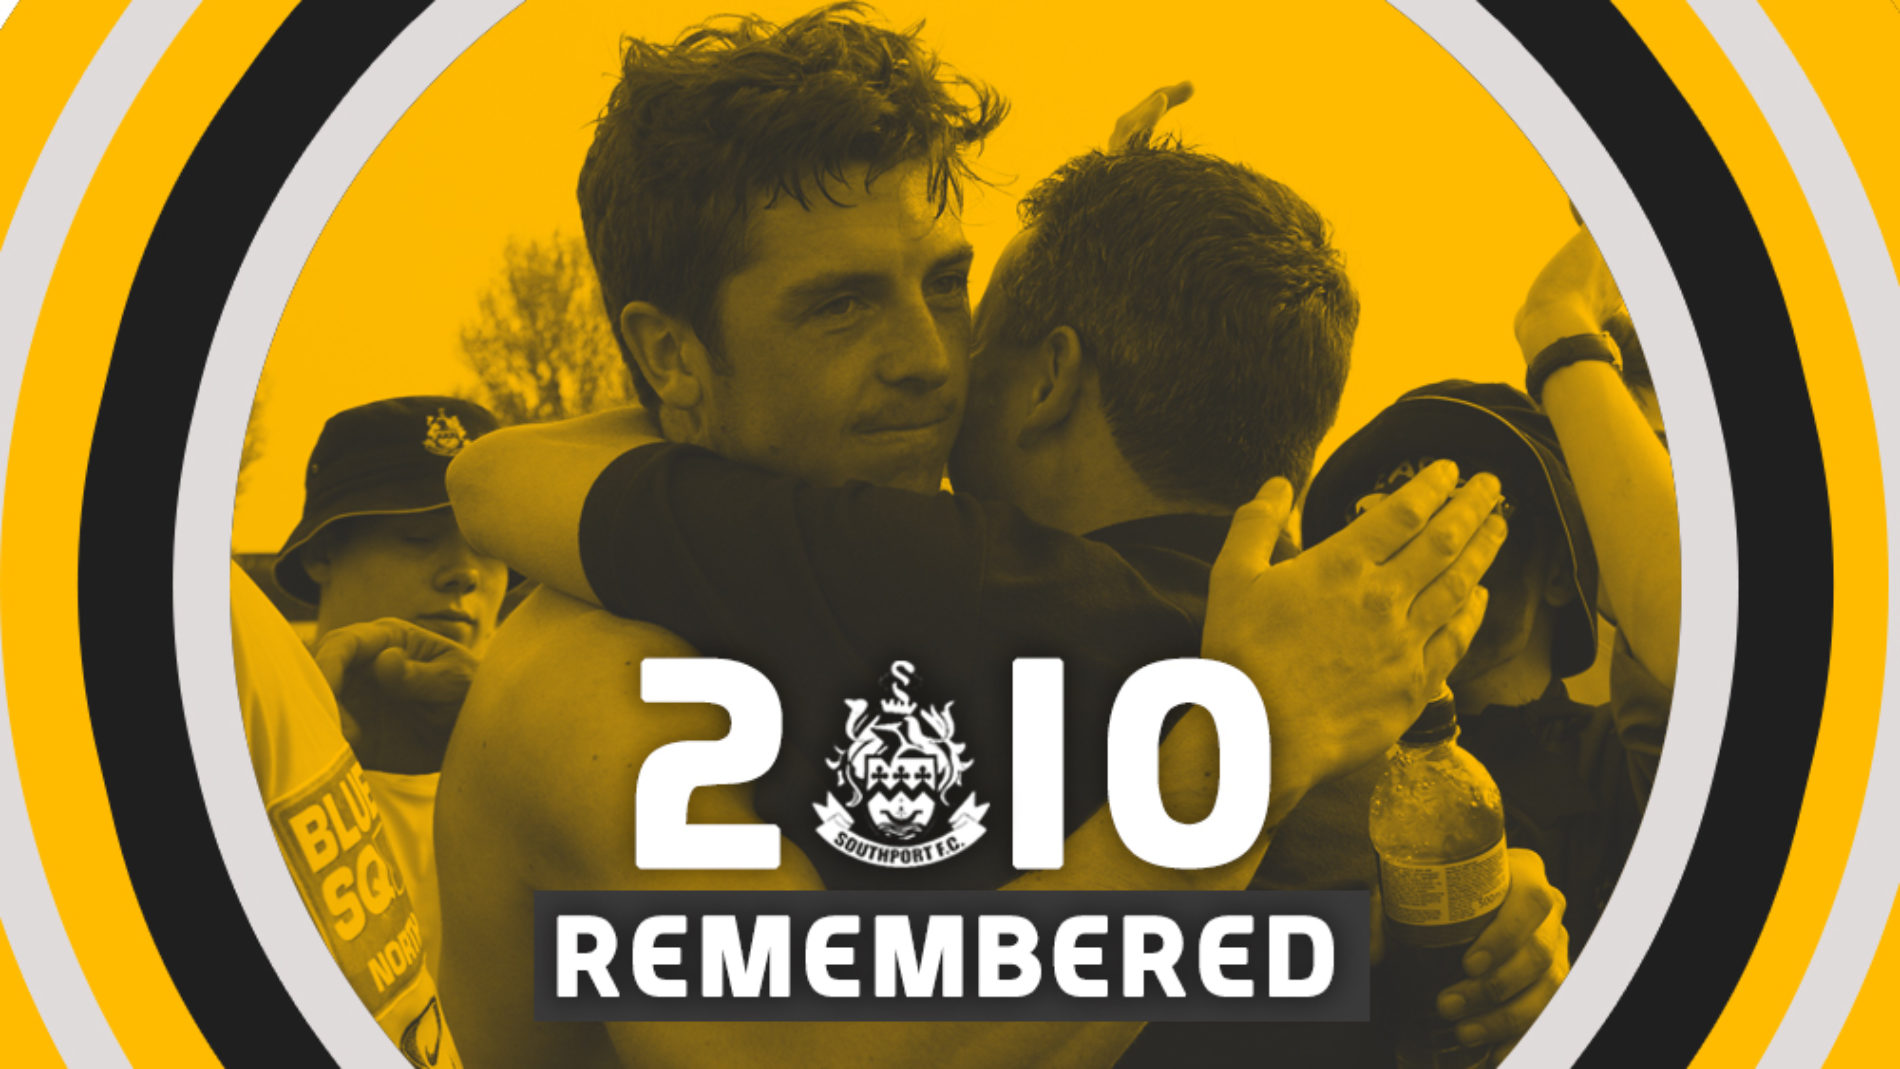 2010 REMEMBERED | Powelly's Memories